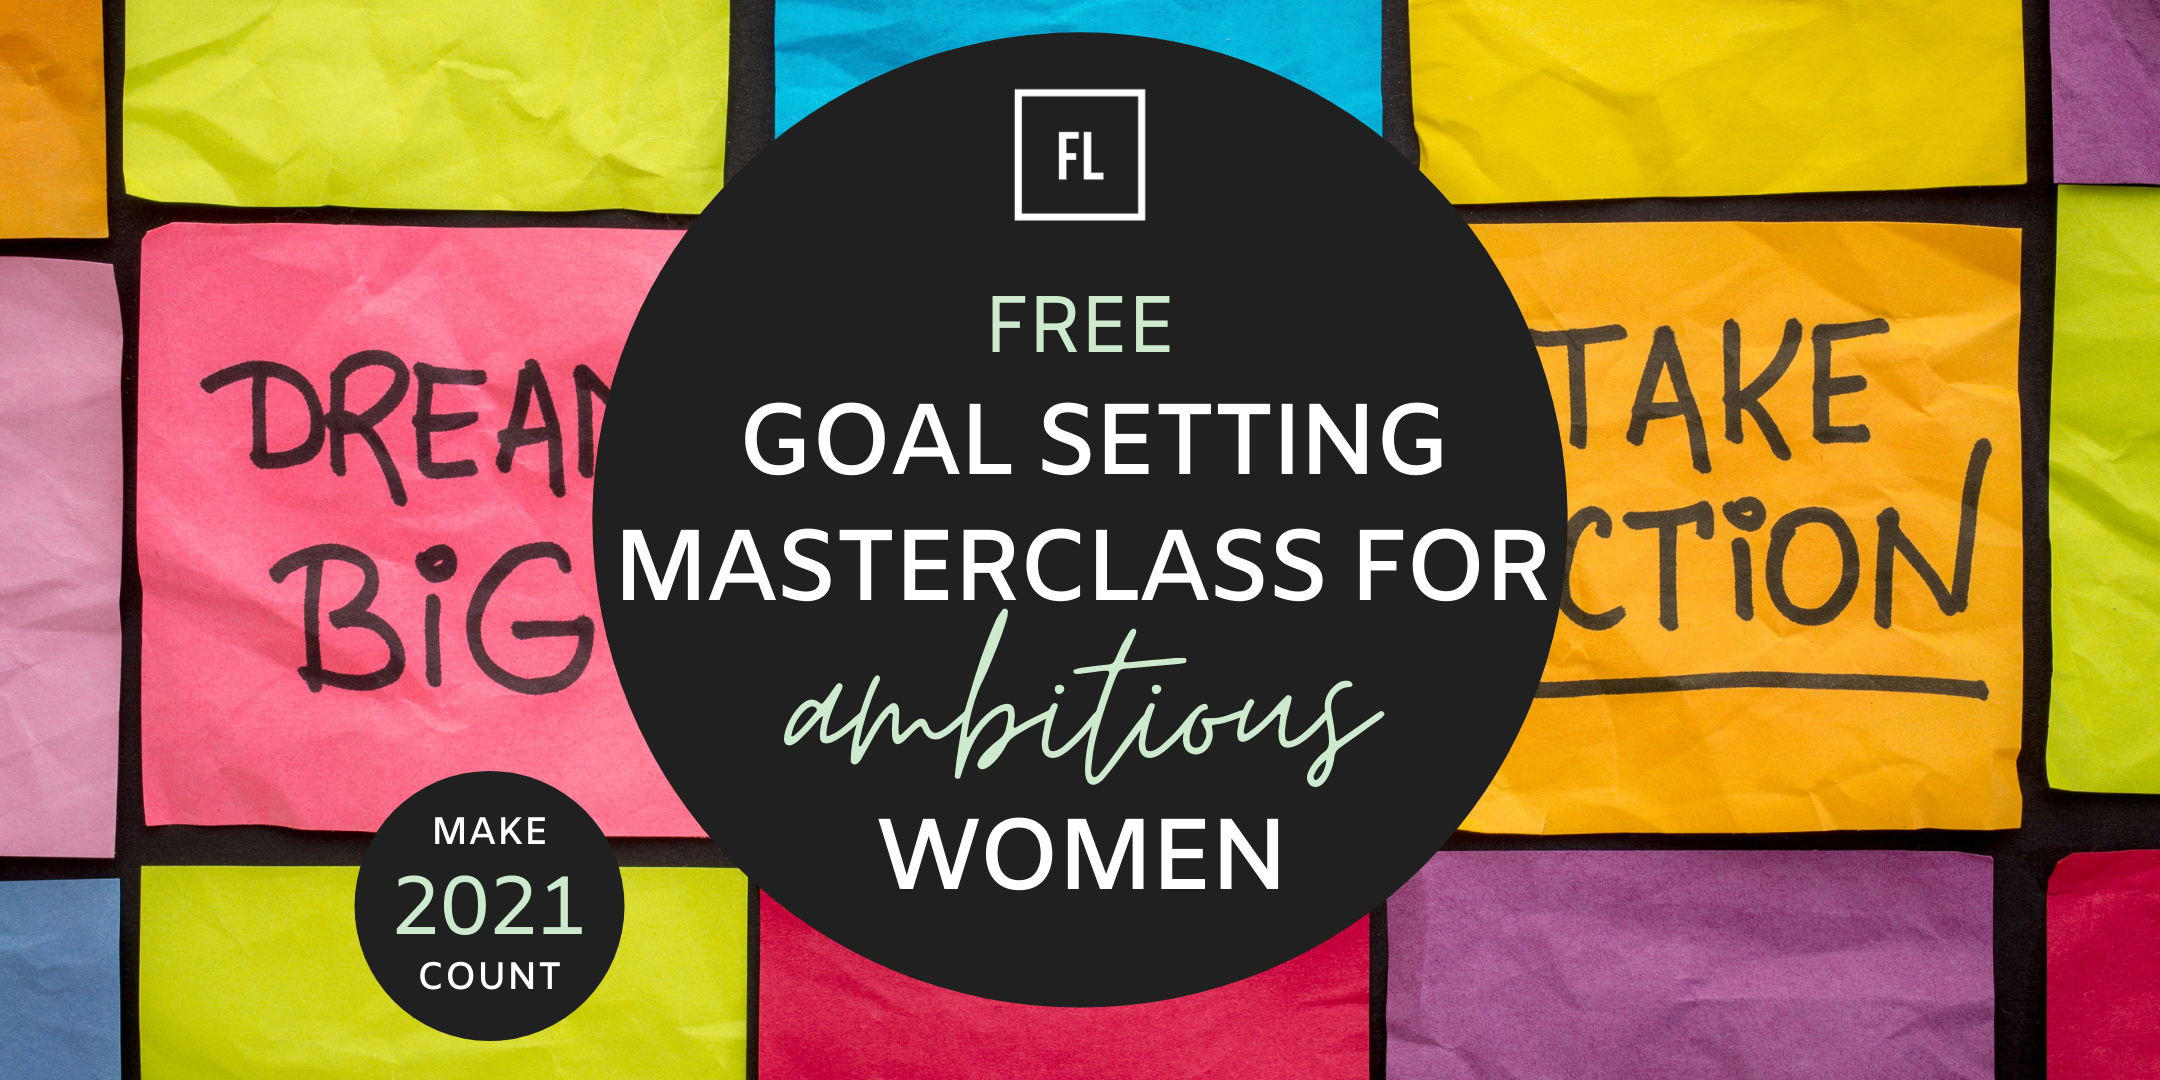 Make 2021 Count: A Goal Setting Masterclass for Ambitious Women